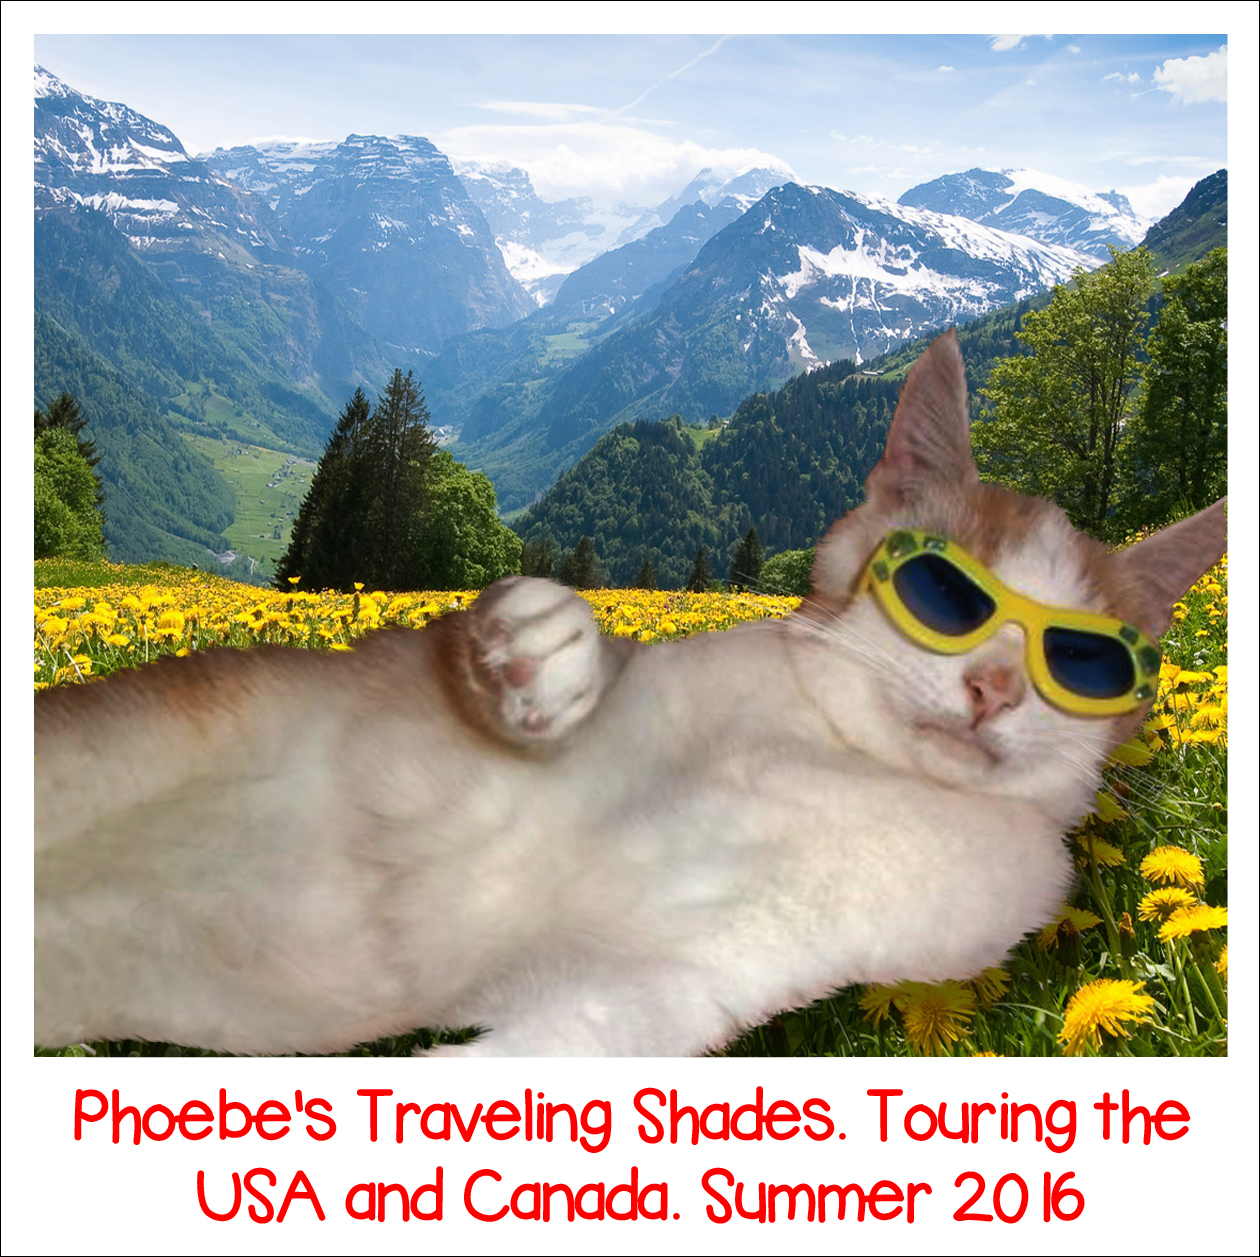 Phoebe's Traveling Shades